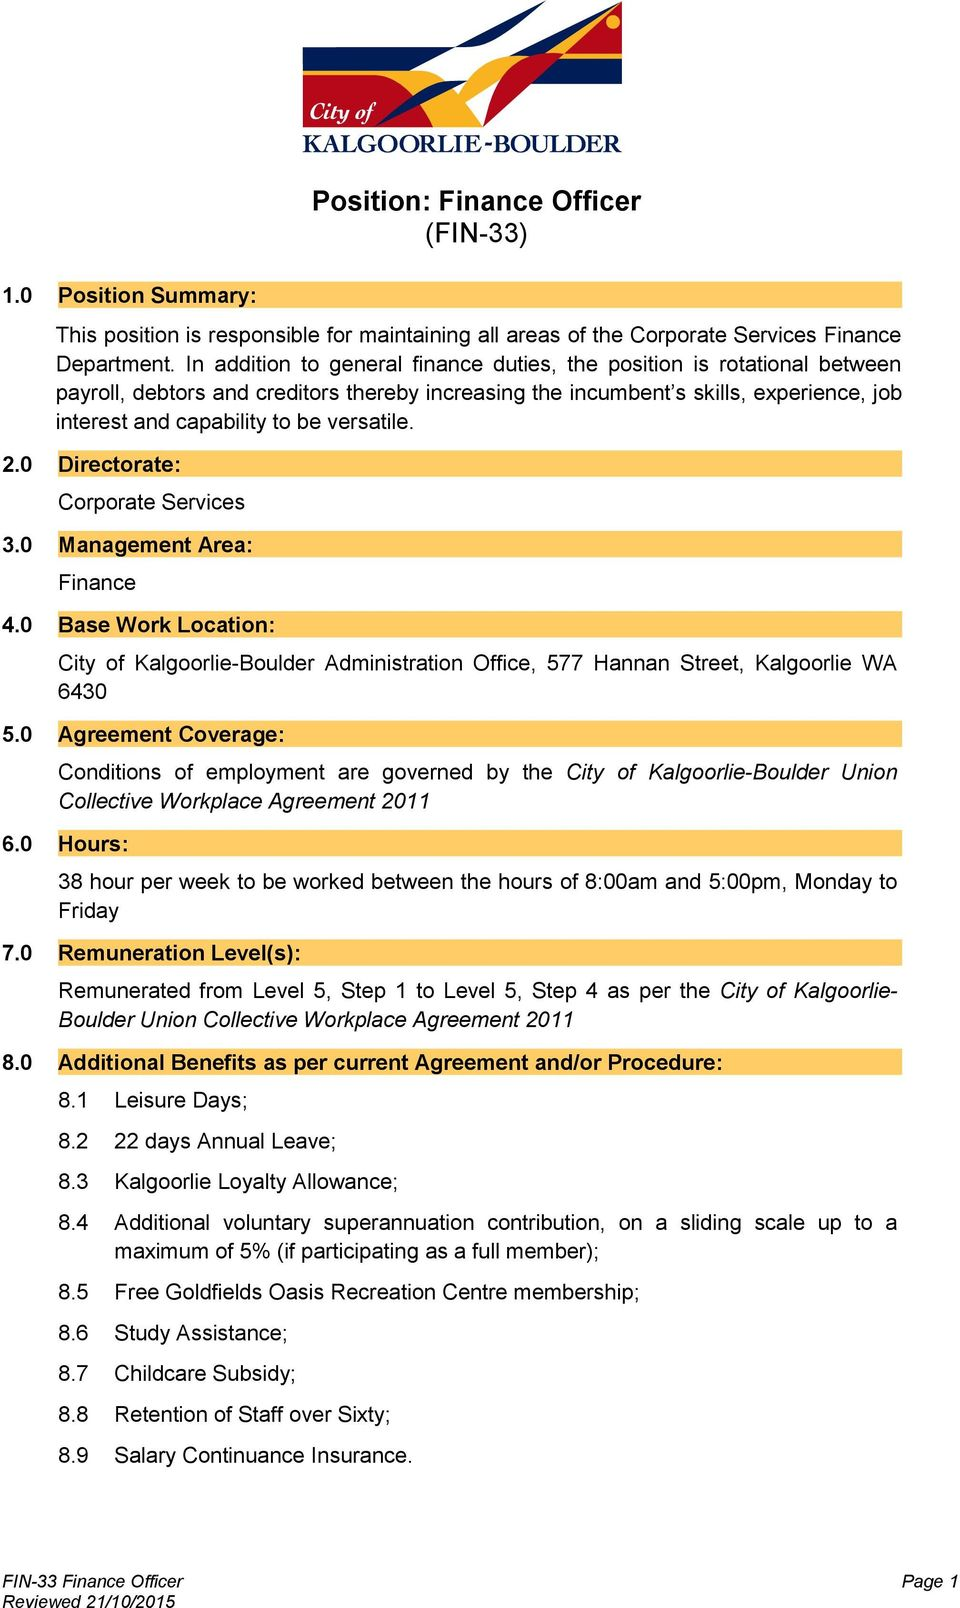 versatile. 2.0 Directorate: Corporate Services 3.0 Management Area: Finance 4.0 Base Work Location: City of Kalgoorlie-Boulder Administration Office, 577 Hannan Street, Kalgoorlie WA 6430 5.